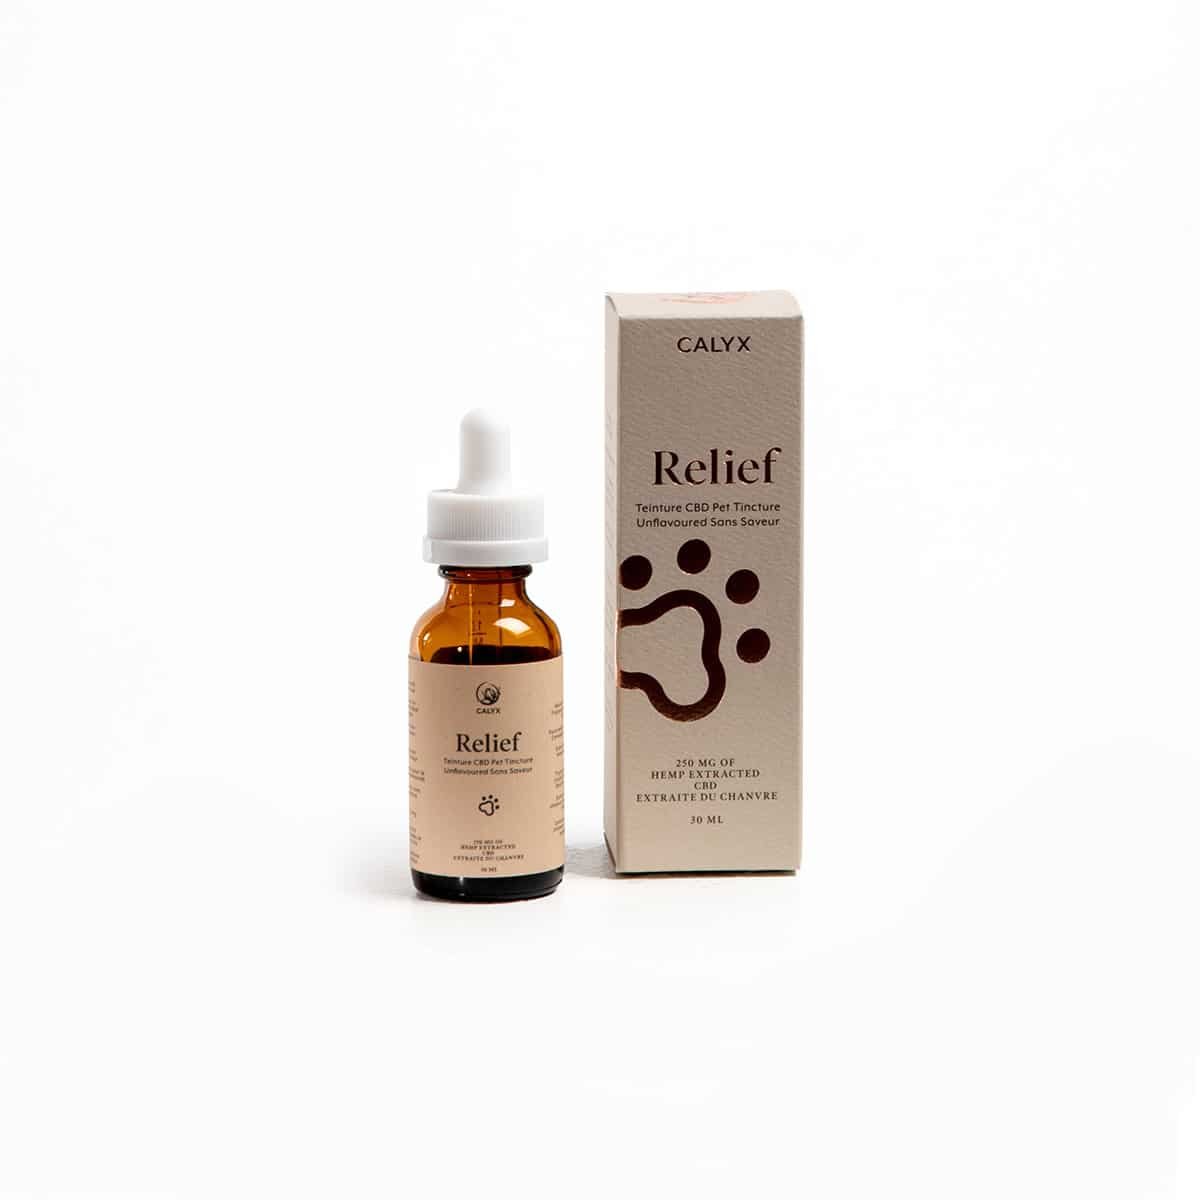 Box and Bottle of Relief Pet Oil